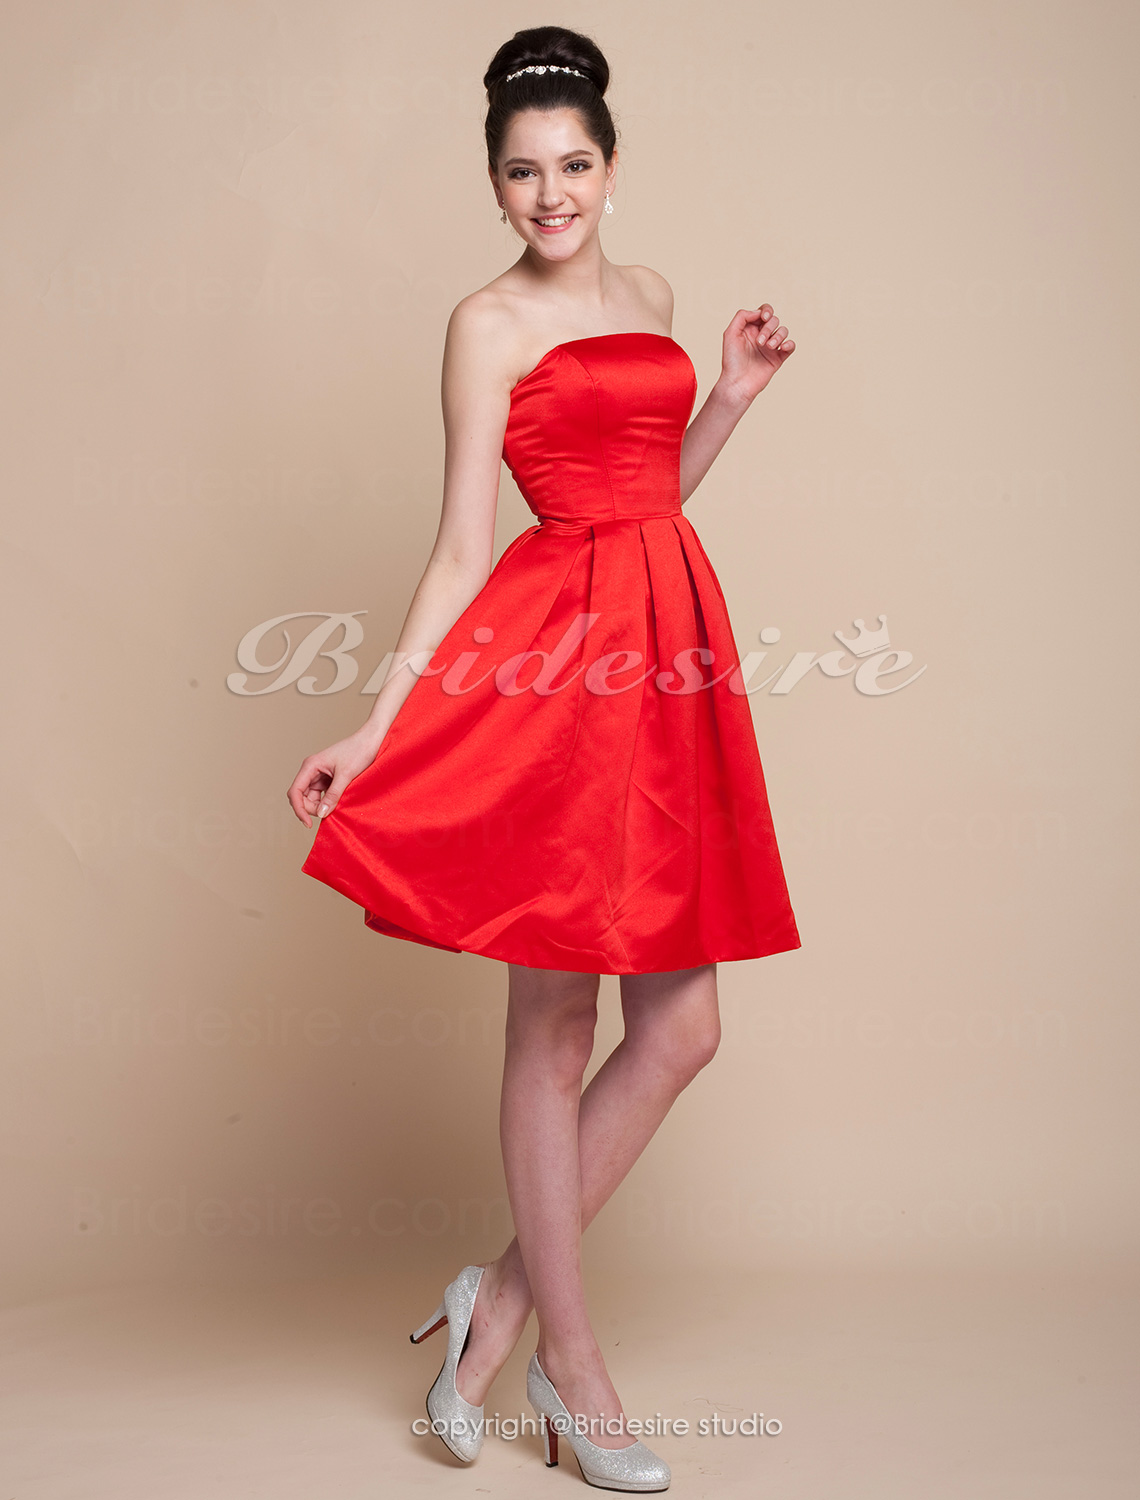 A-line Princess Satin Knee-length Strapless Bridesmaid/ Wedding Party Dress